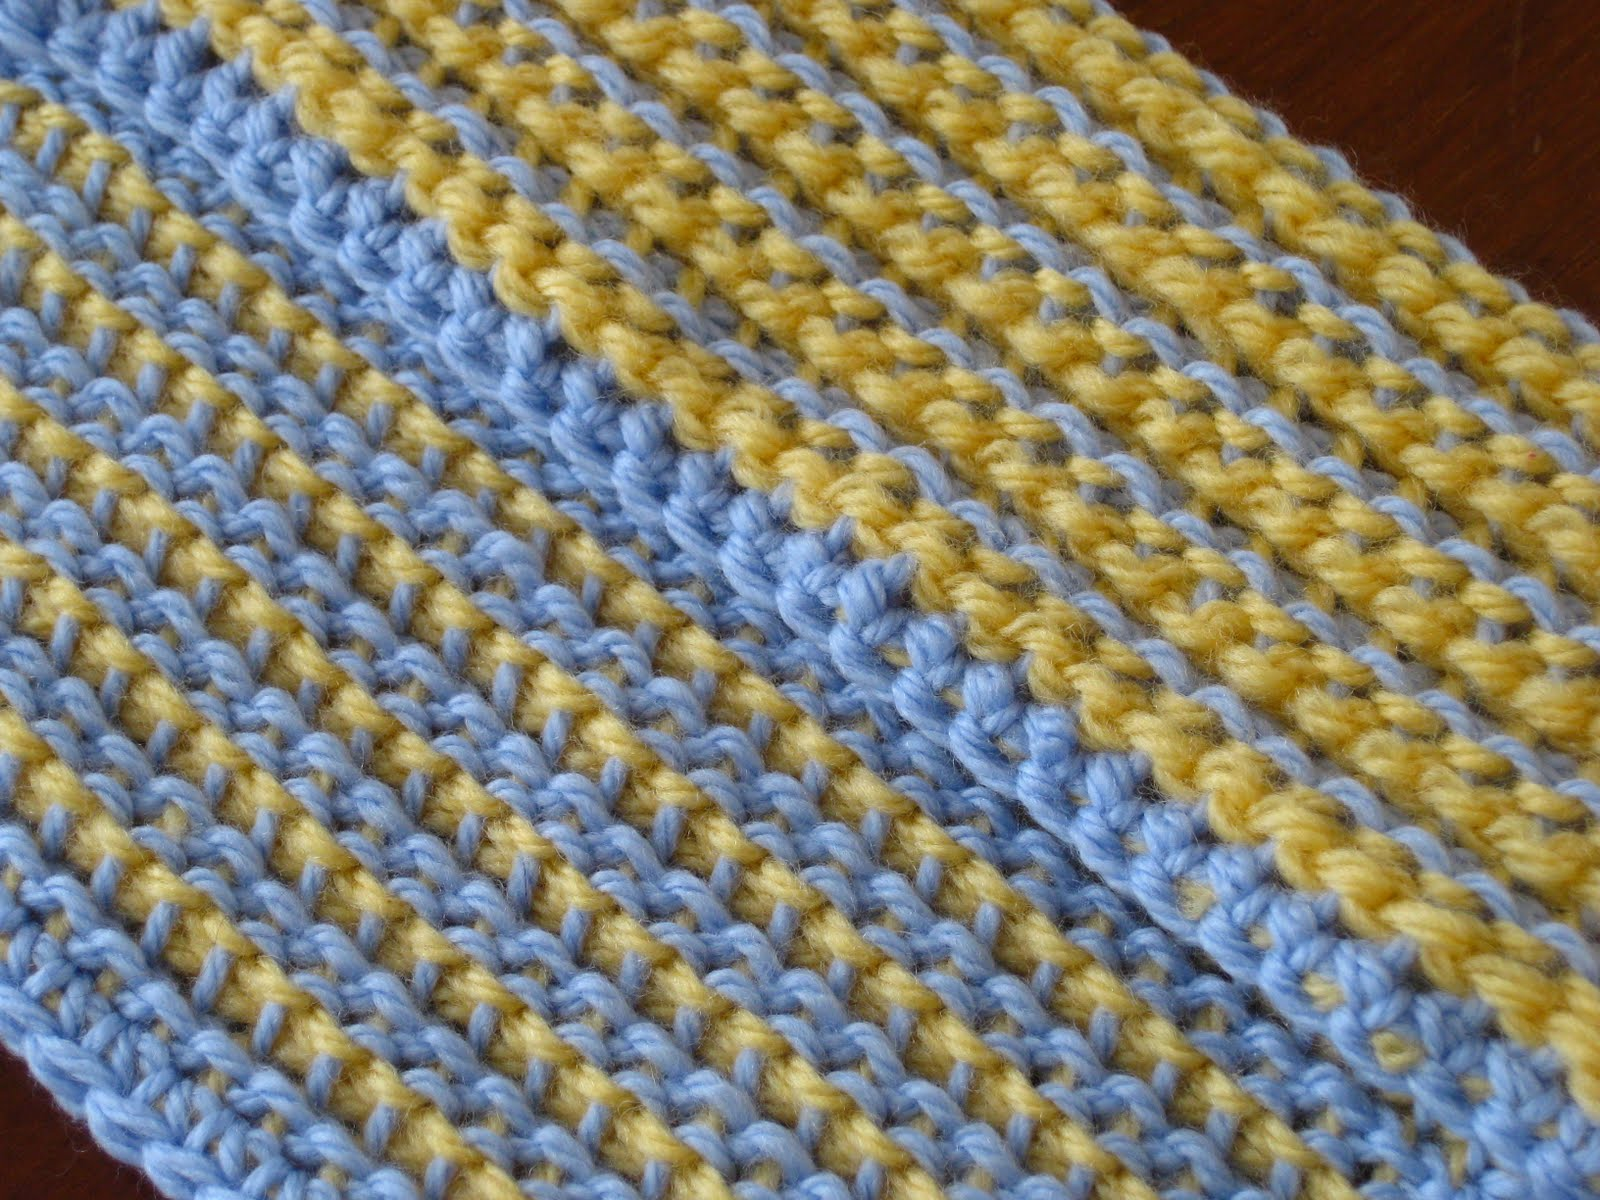 Crochet Patterns K Hook : used a 6.50mm cro-hook with 8ply and the result was quite thick ...